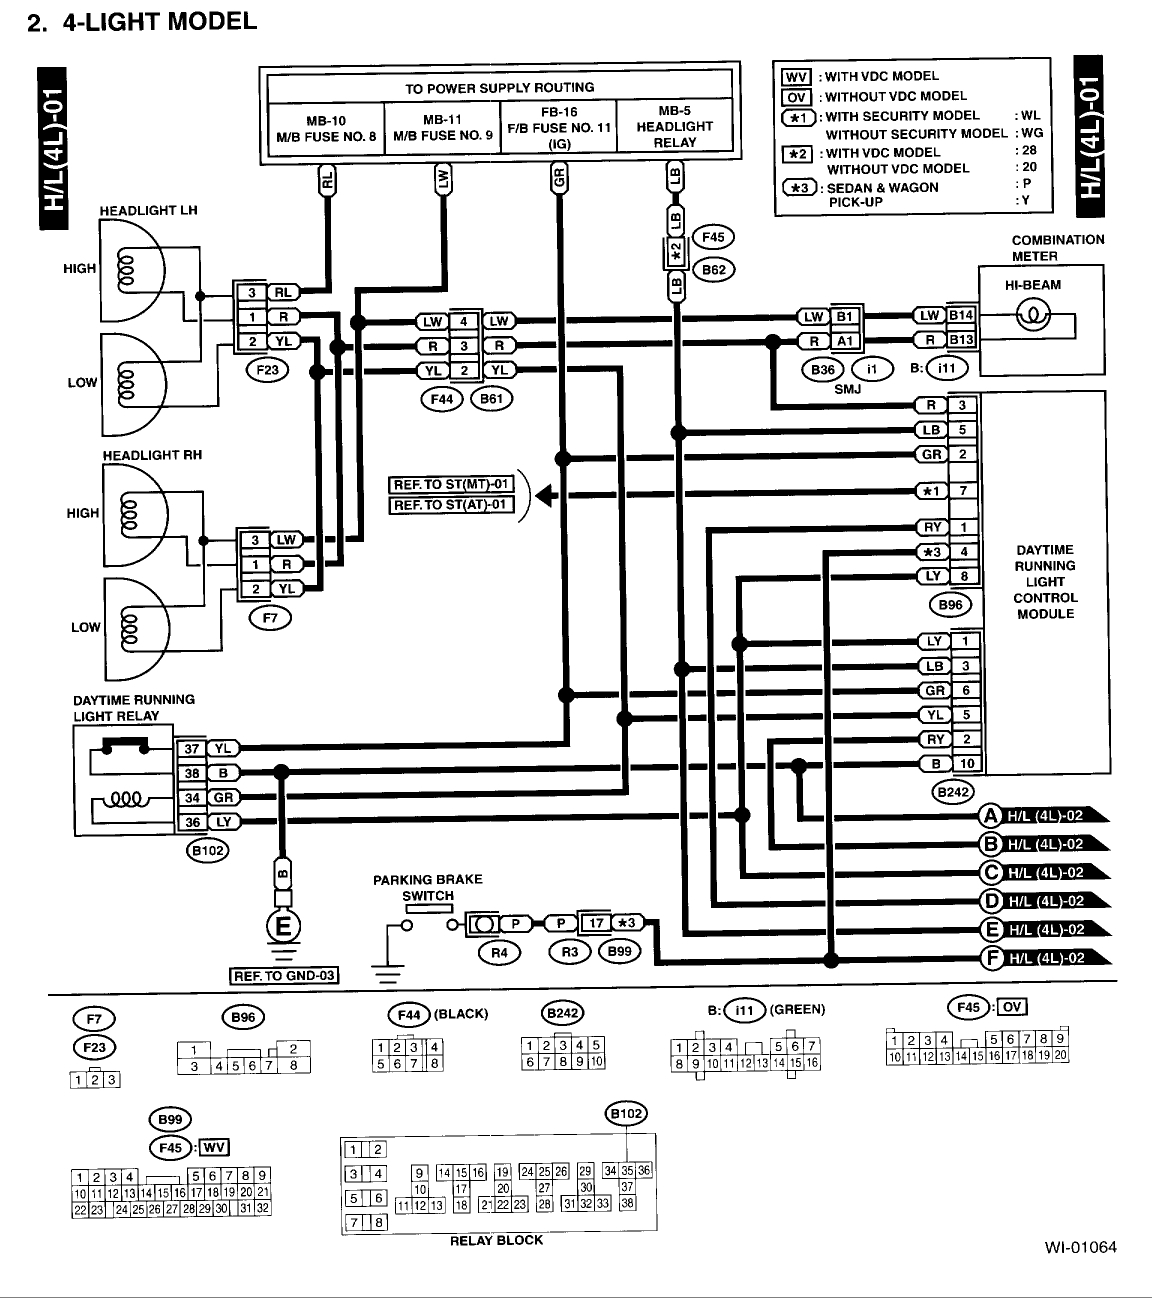 subaru forester headlight wiring diagram wiring diagram 2007 mazda 6 headlight diagram co headlight wiring diagram #11